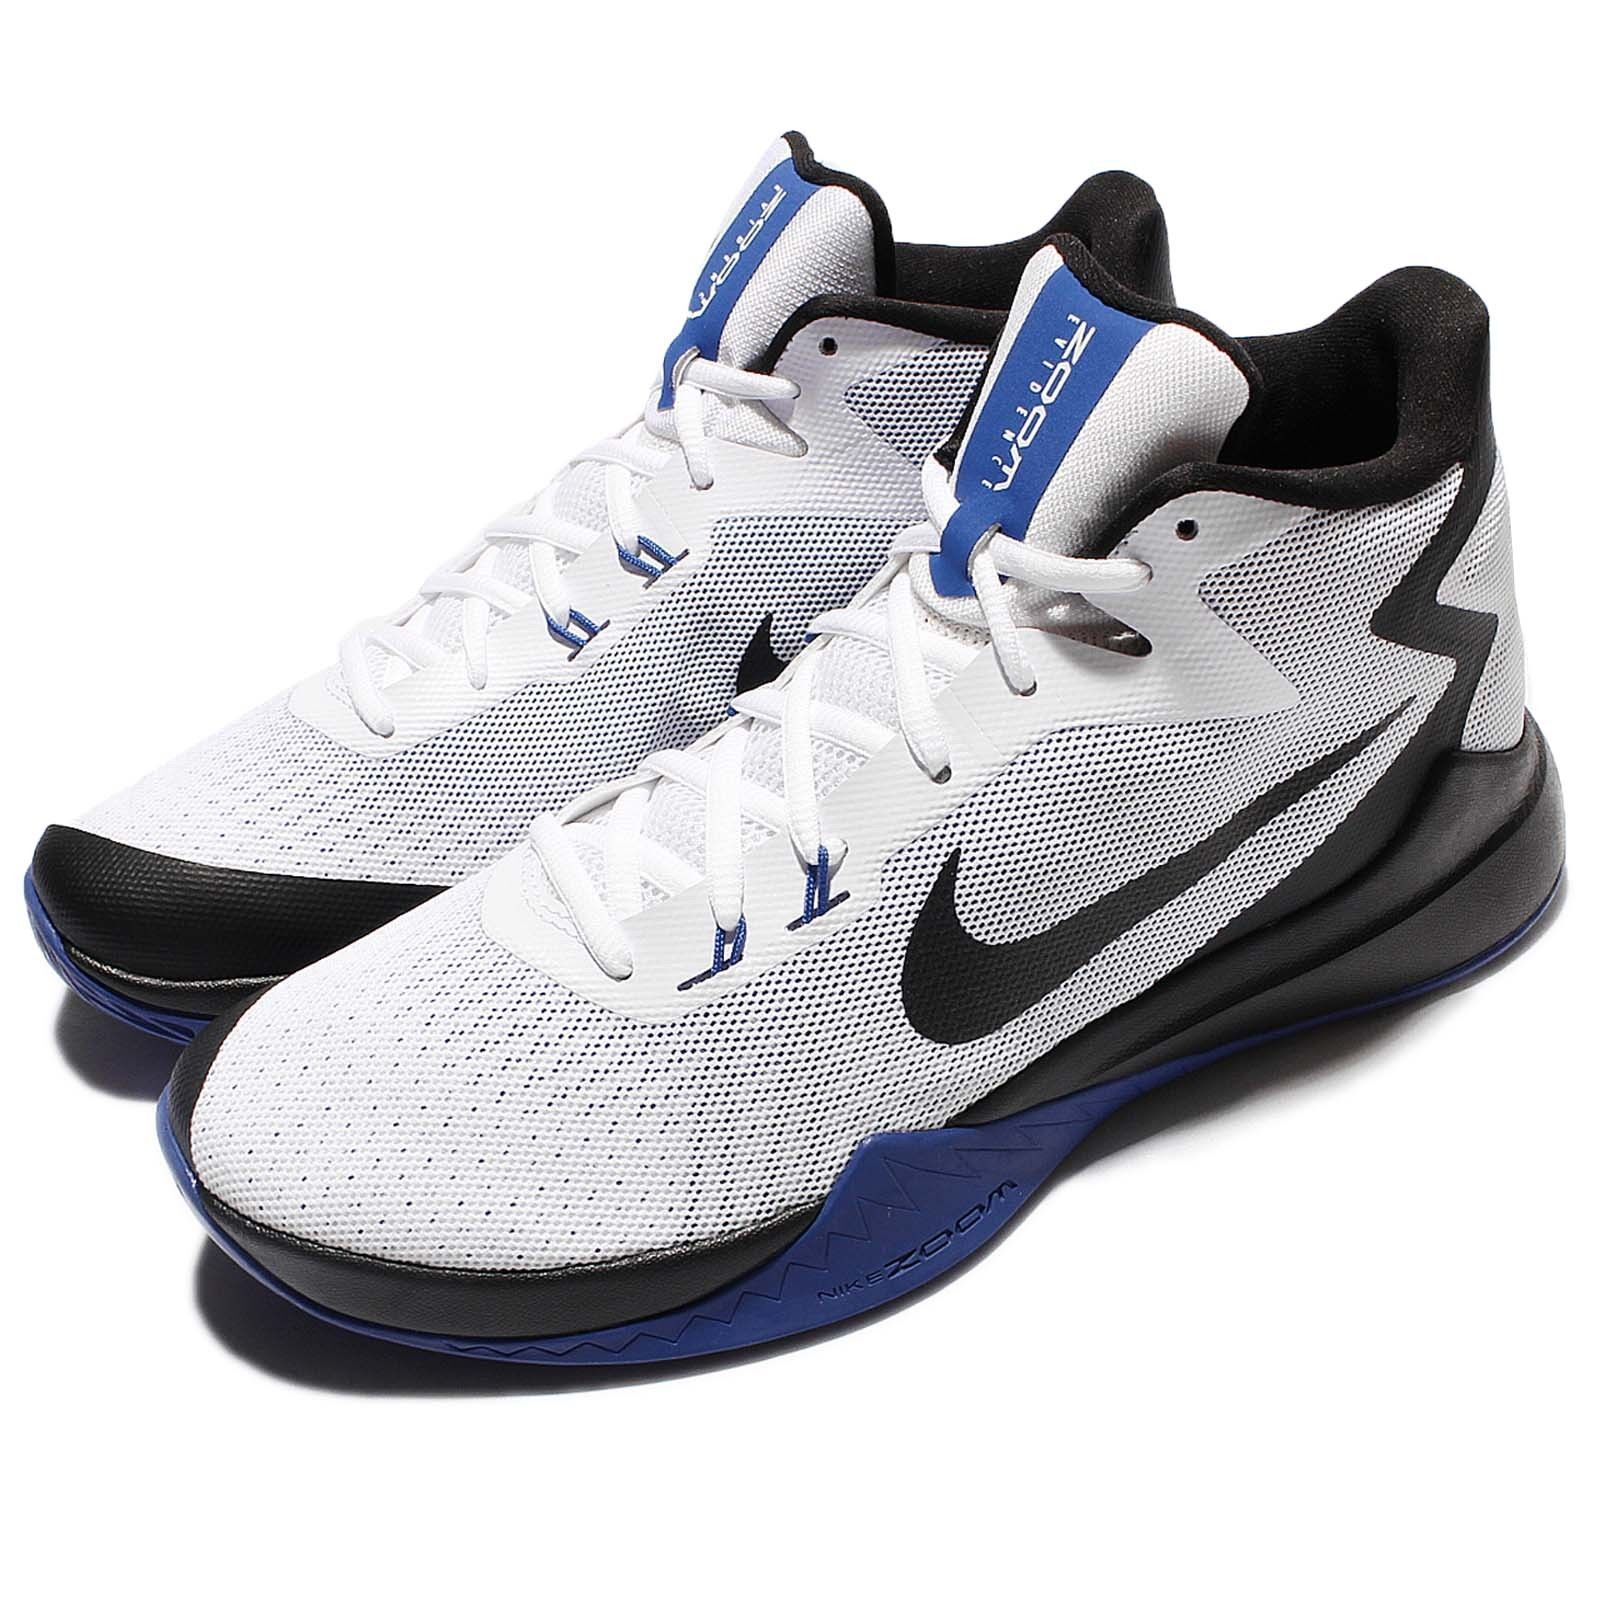 Nike Zoom Evidence White Black bluee Men Basketball shoes Sneakers 852464-104